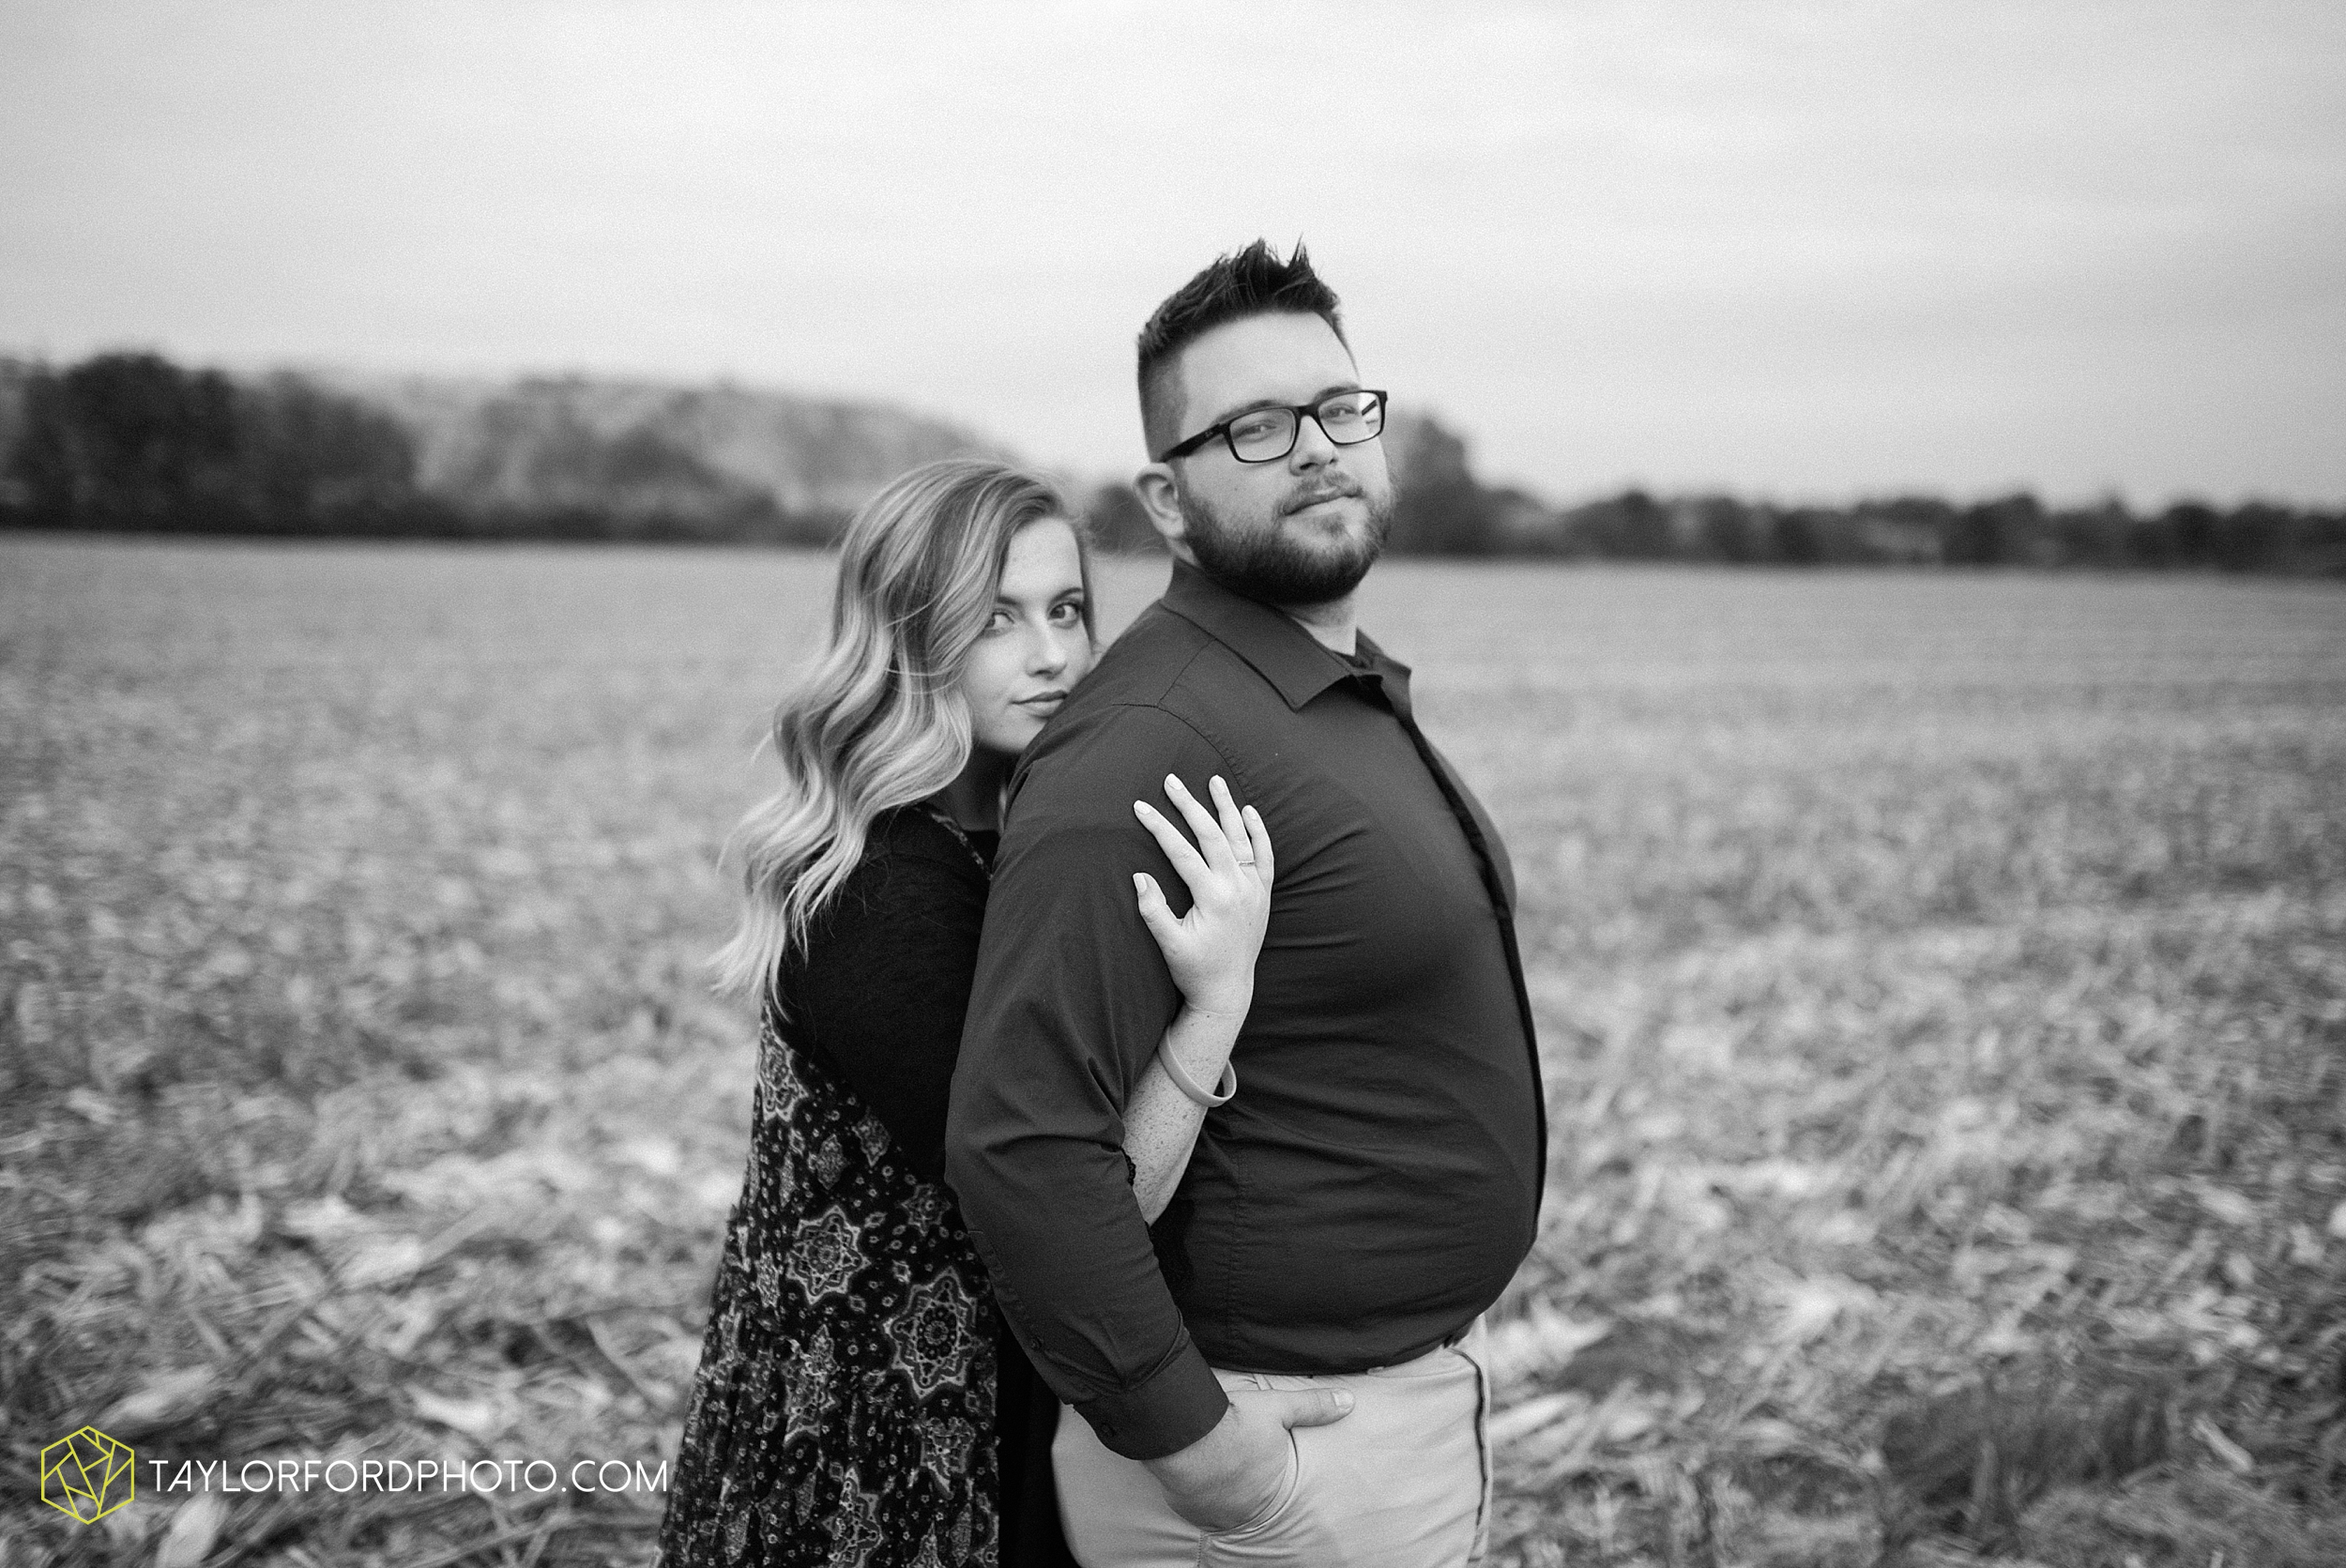 downtown-fort-wayne-engagement-foster-park-bravas-wunderkamer-fox-island-quarry-photographer-taylor-ford-photography_0973.jpg